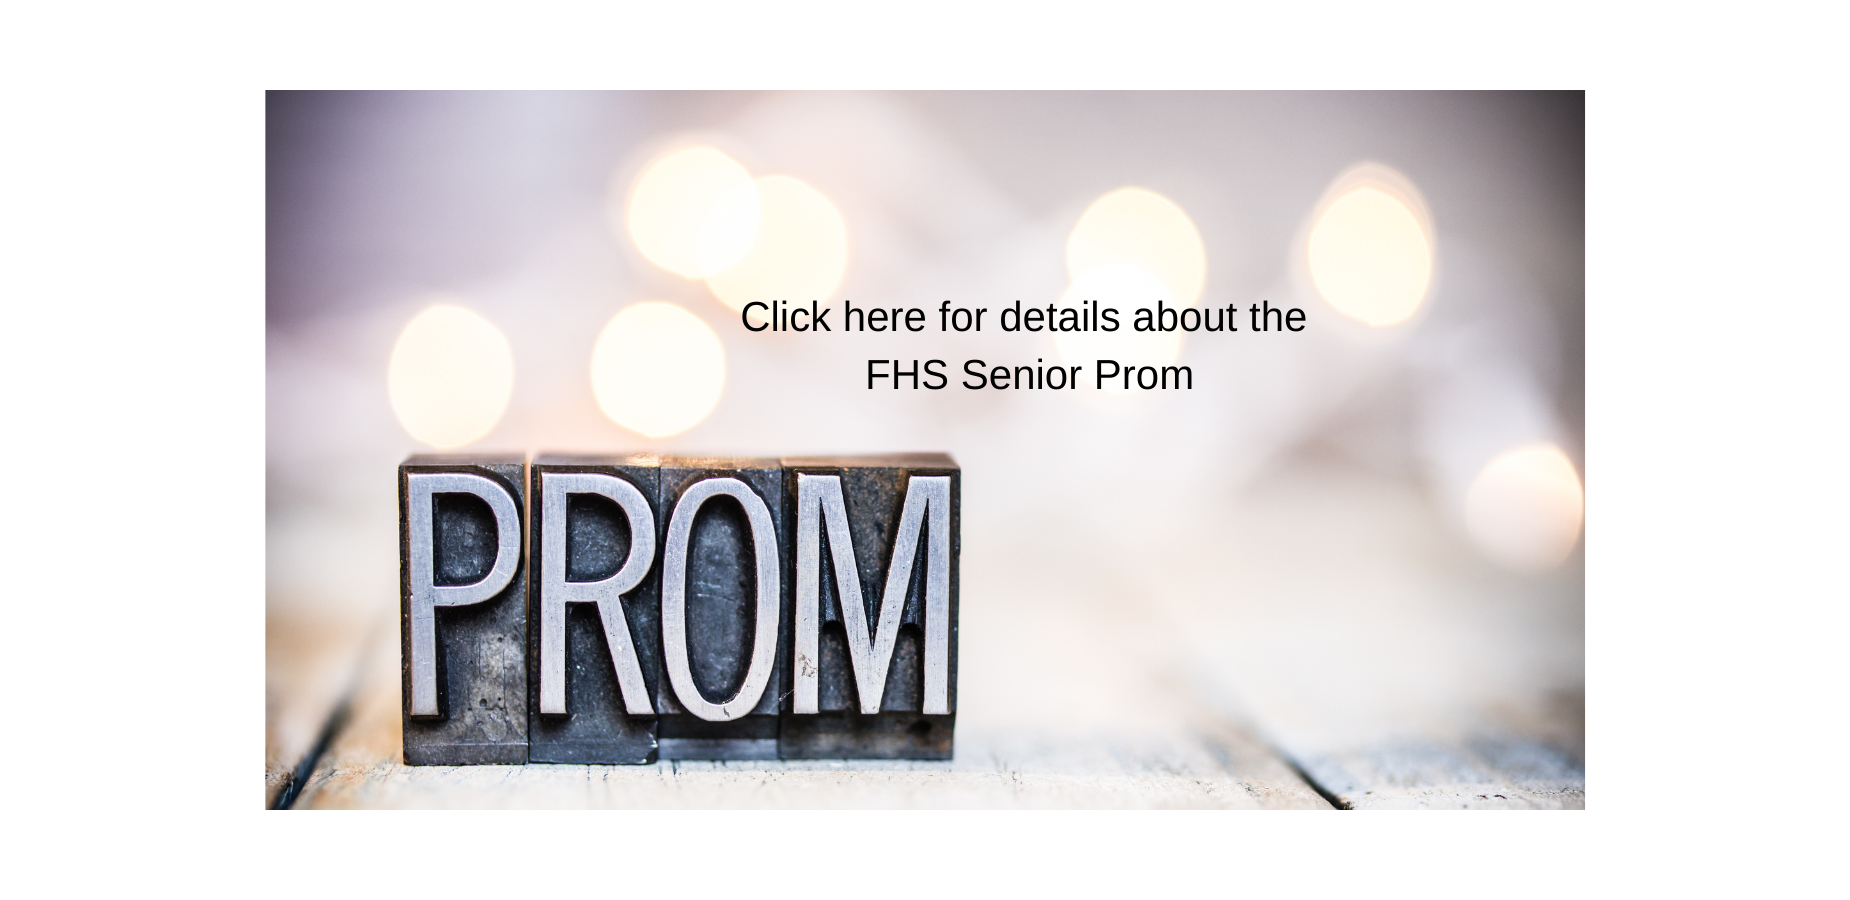 Click here for details about the FHS Senior Prom